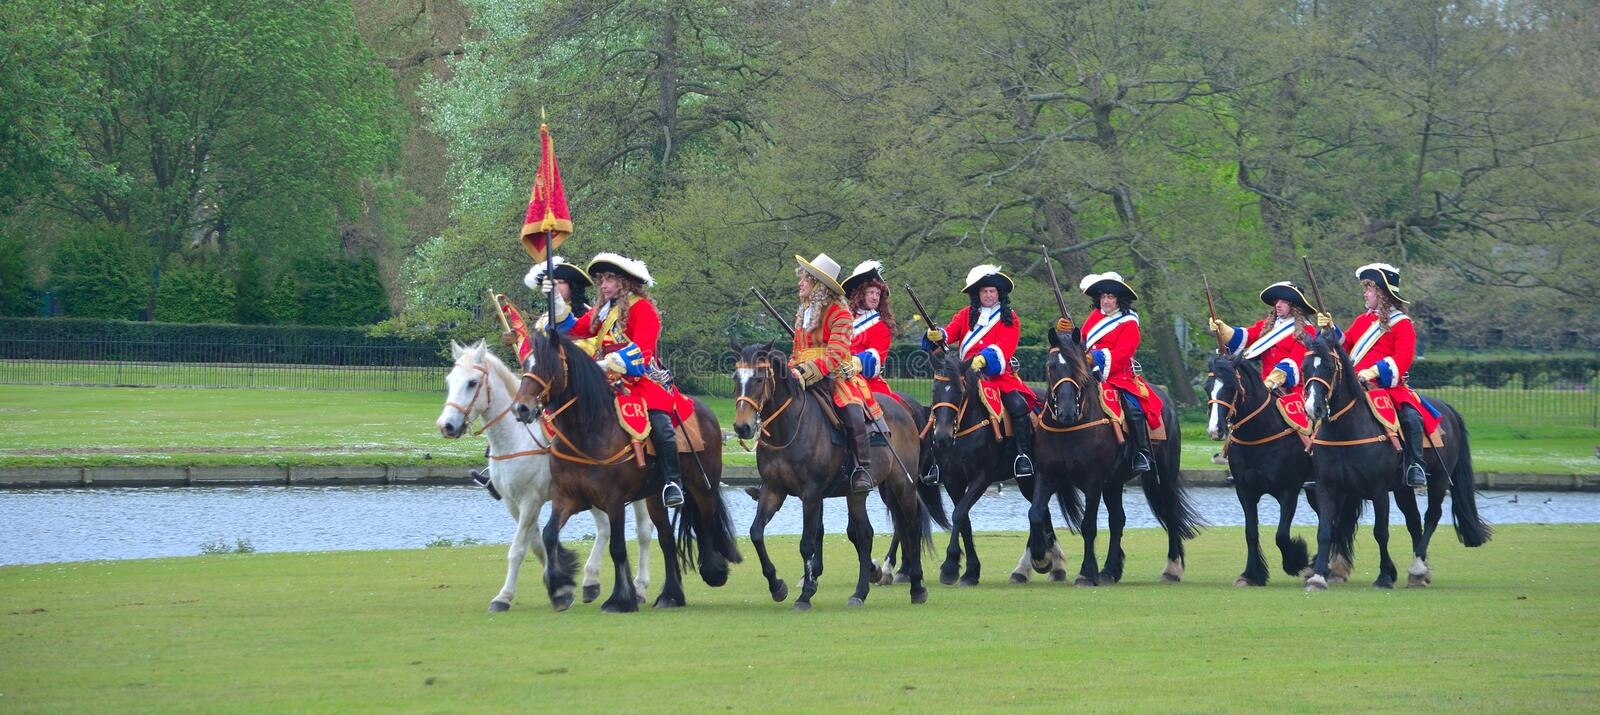 The Kings Lifeguard of horse Regiment reenactment group. SAFFRON WALDEN, ESSEX, ENGLAND - MAY 01, 2017: The Kings Lifeguard of horse Regiment reenactment group royalty free stock photography